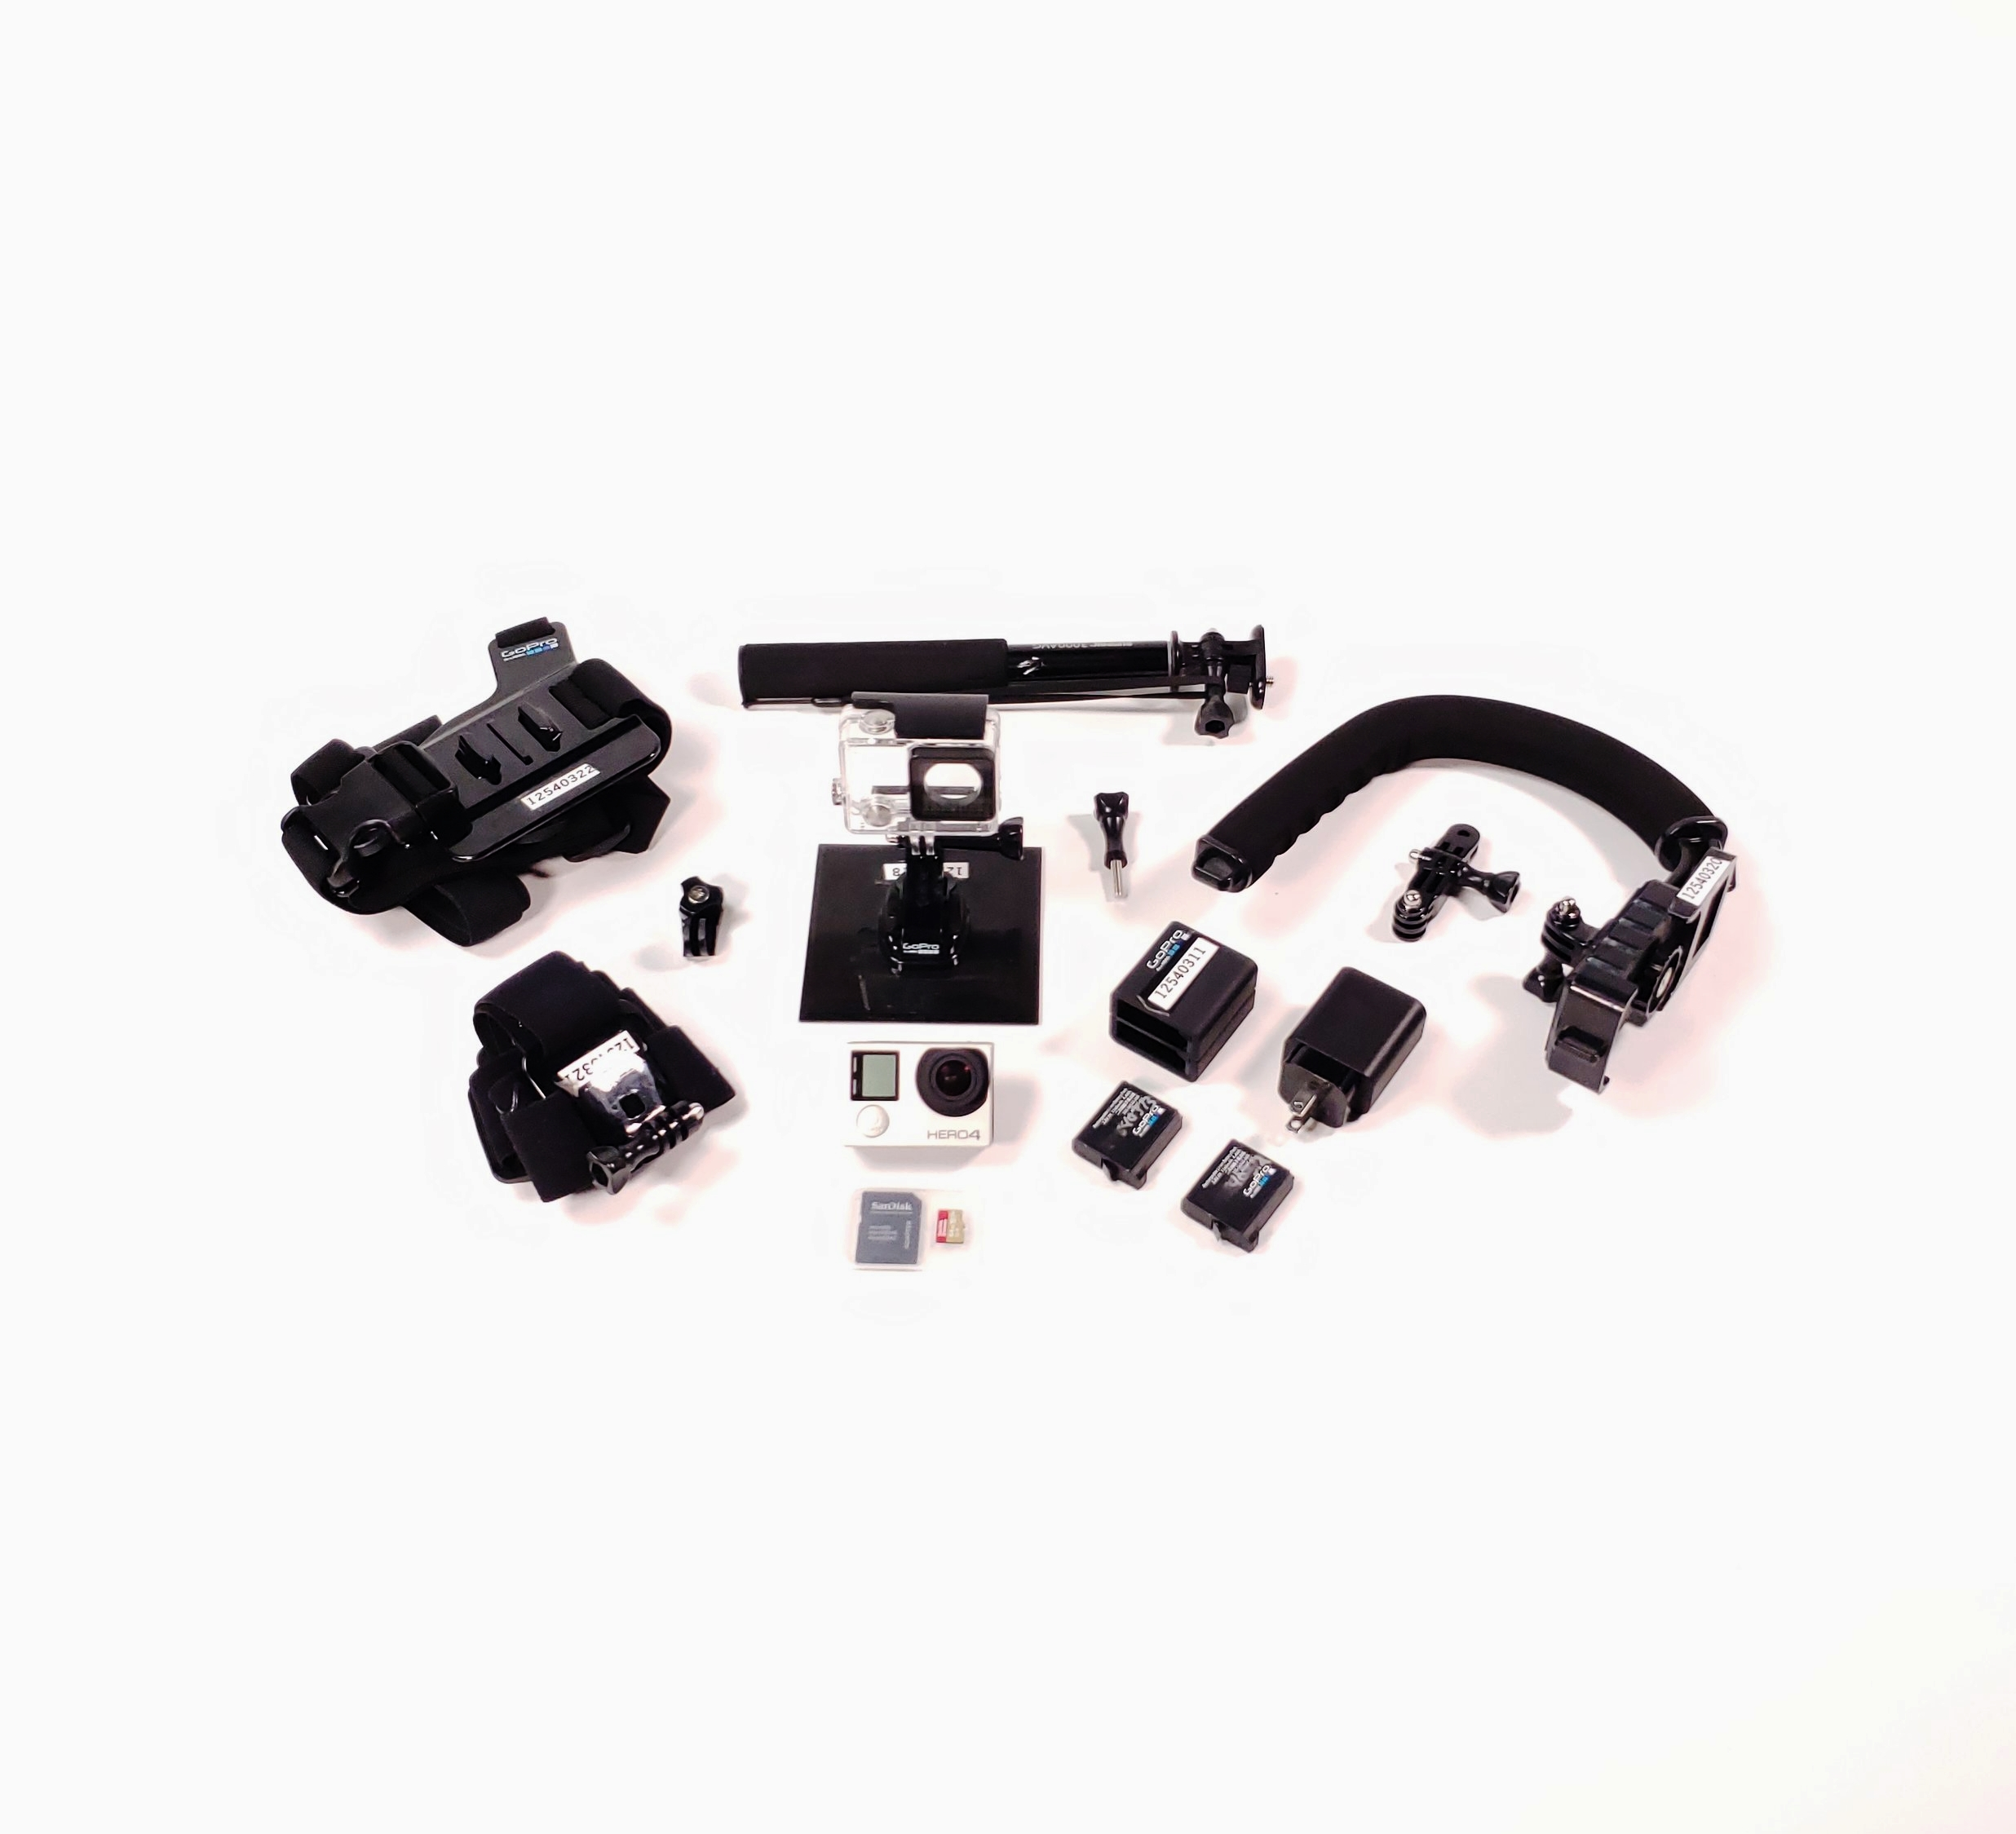 GoPro HERO4 Silver Camera Kit